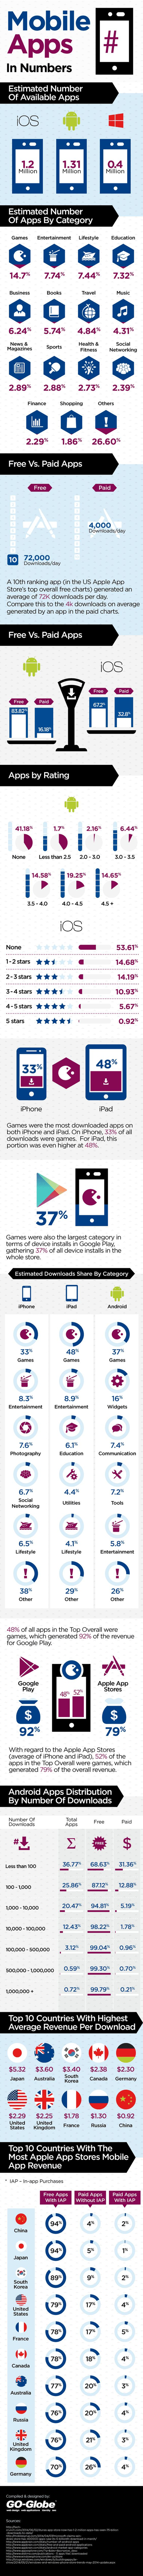 Mobile Apps In Numbers #infographic #Apps #Mobile